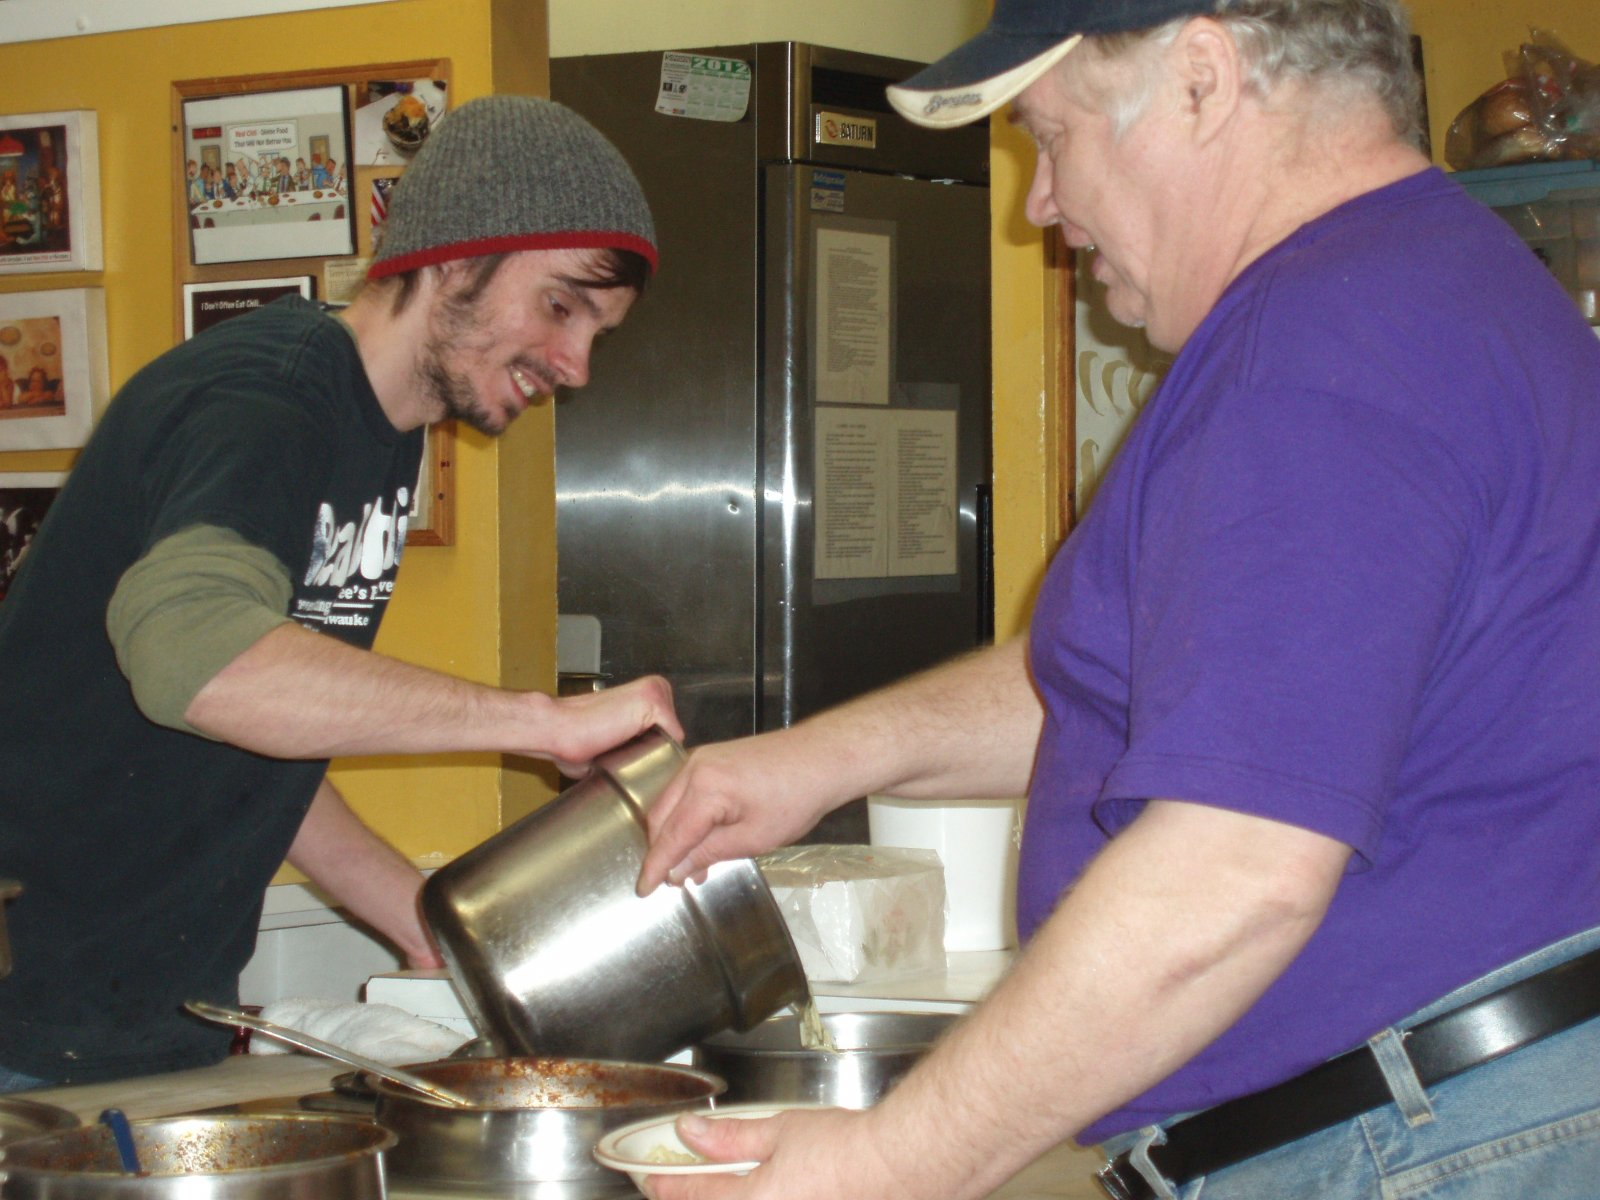 """Spanky"" and James Stocks work together at the steam table.  Photo by Peggy Schulz."